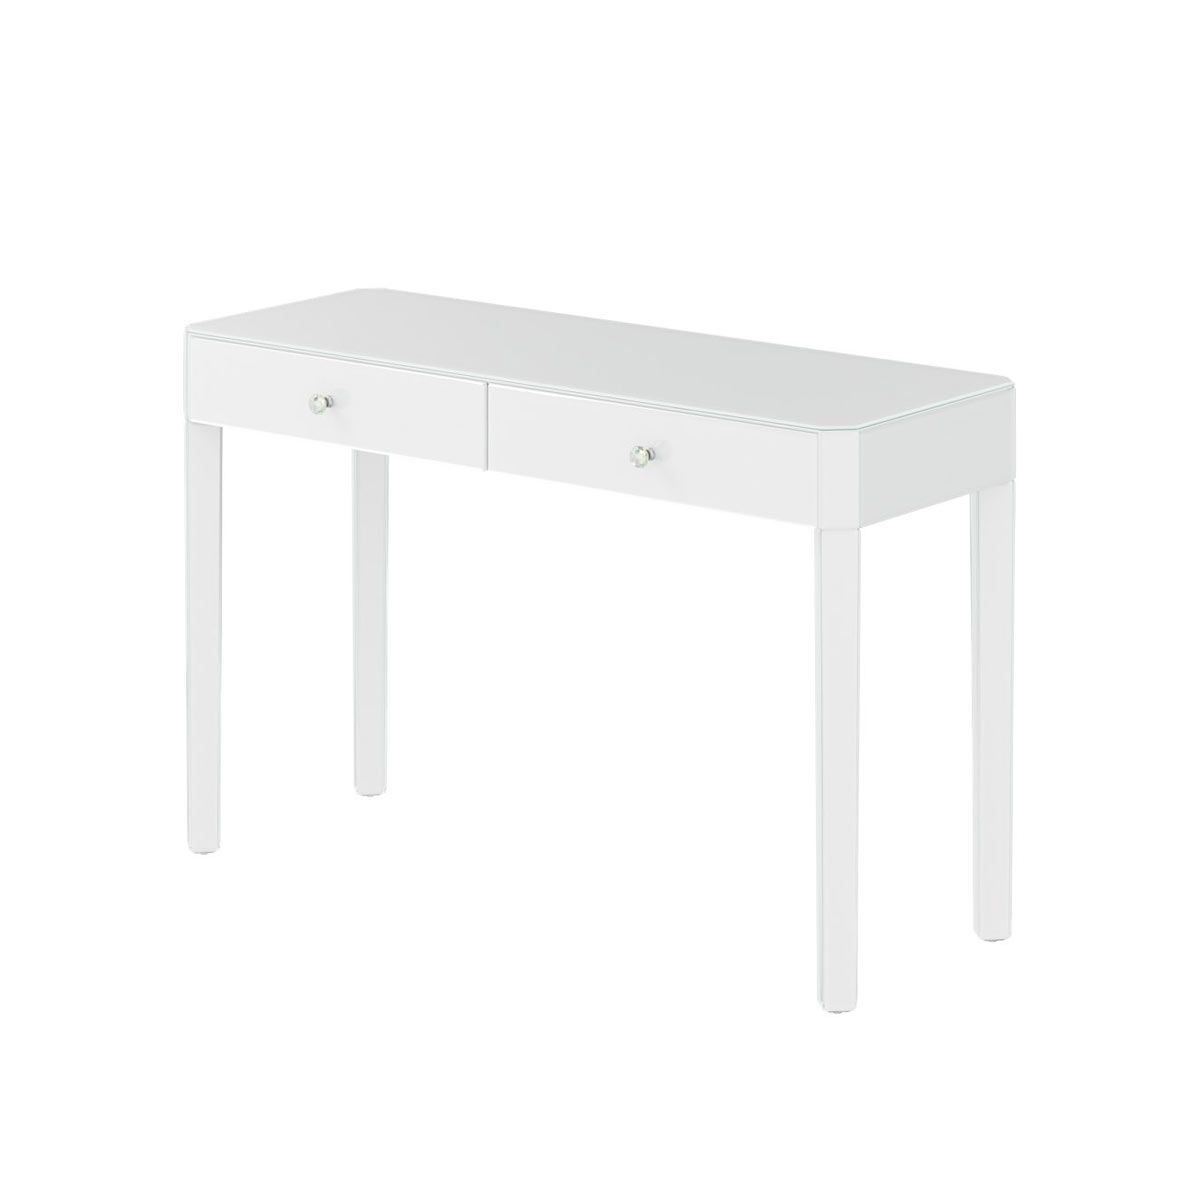 Reflections White Glass 2 Drawer Dressing Table